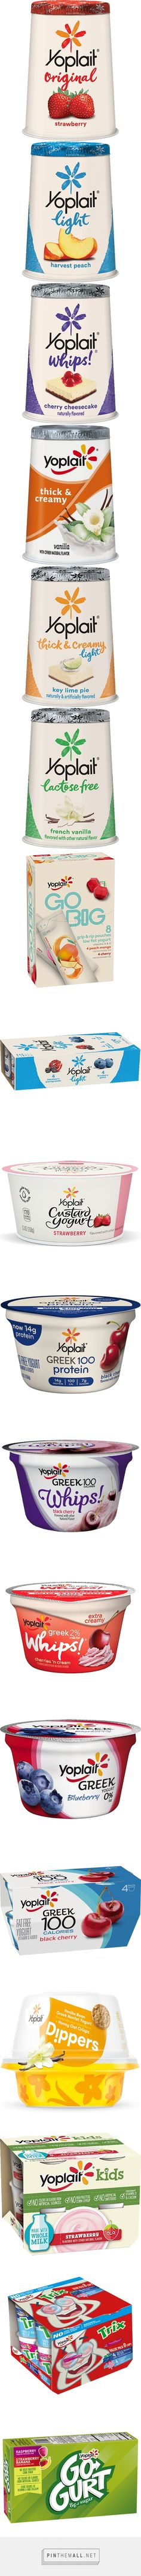 Products – Yoplait.com - created via https://pinthemall.net